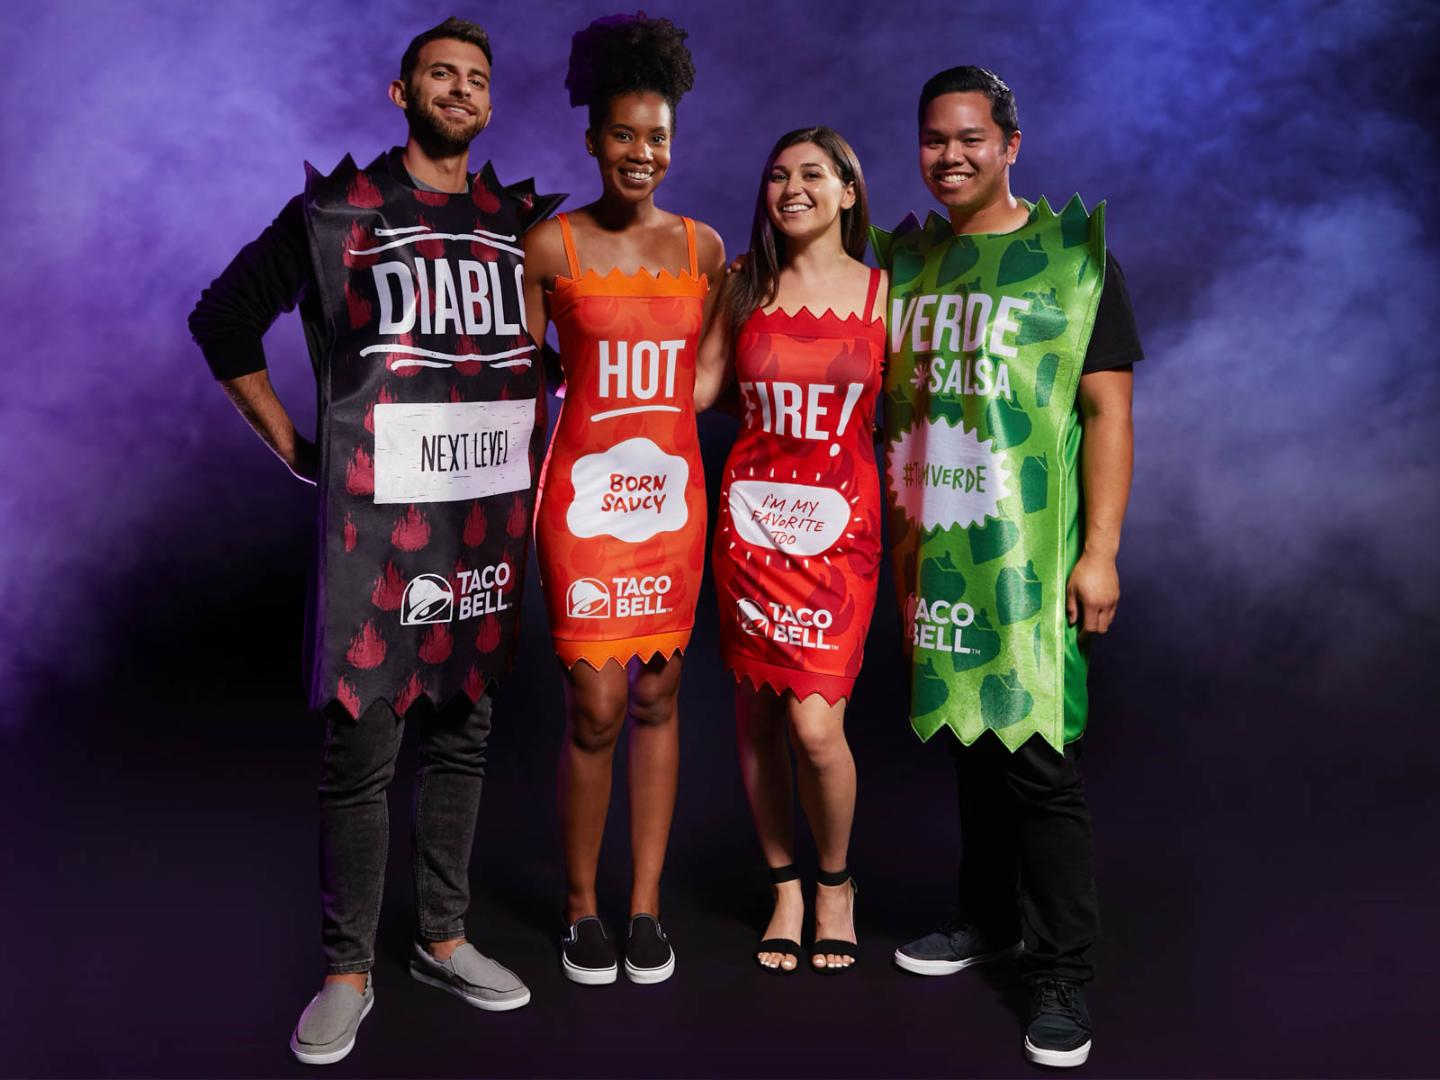 You Can Dress Up as a Taco Bell Hot Sauce Packet This Halloween